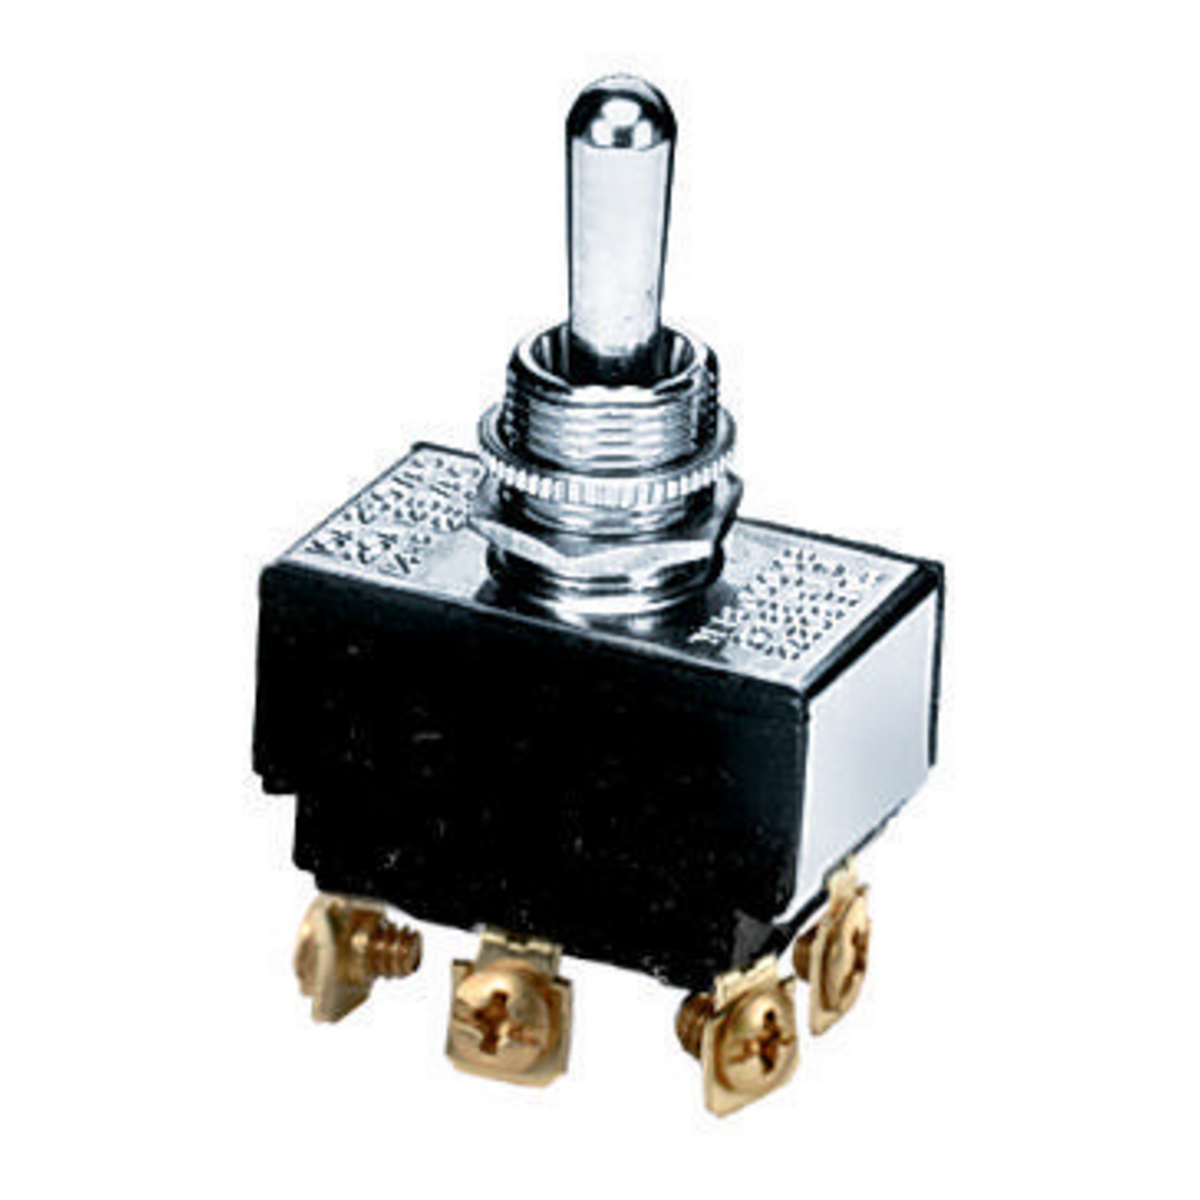 Hubbell HBL223 1-1/2 Hp 20 Amp 125 VAC DPDT Toggle Switch